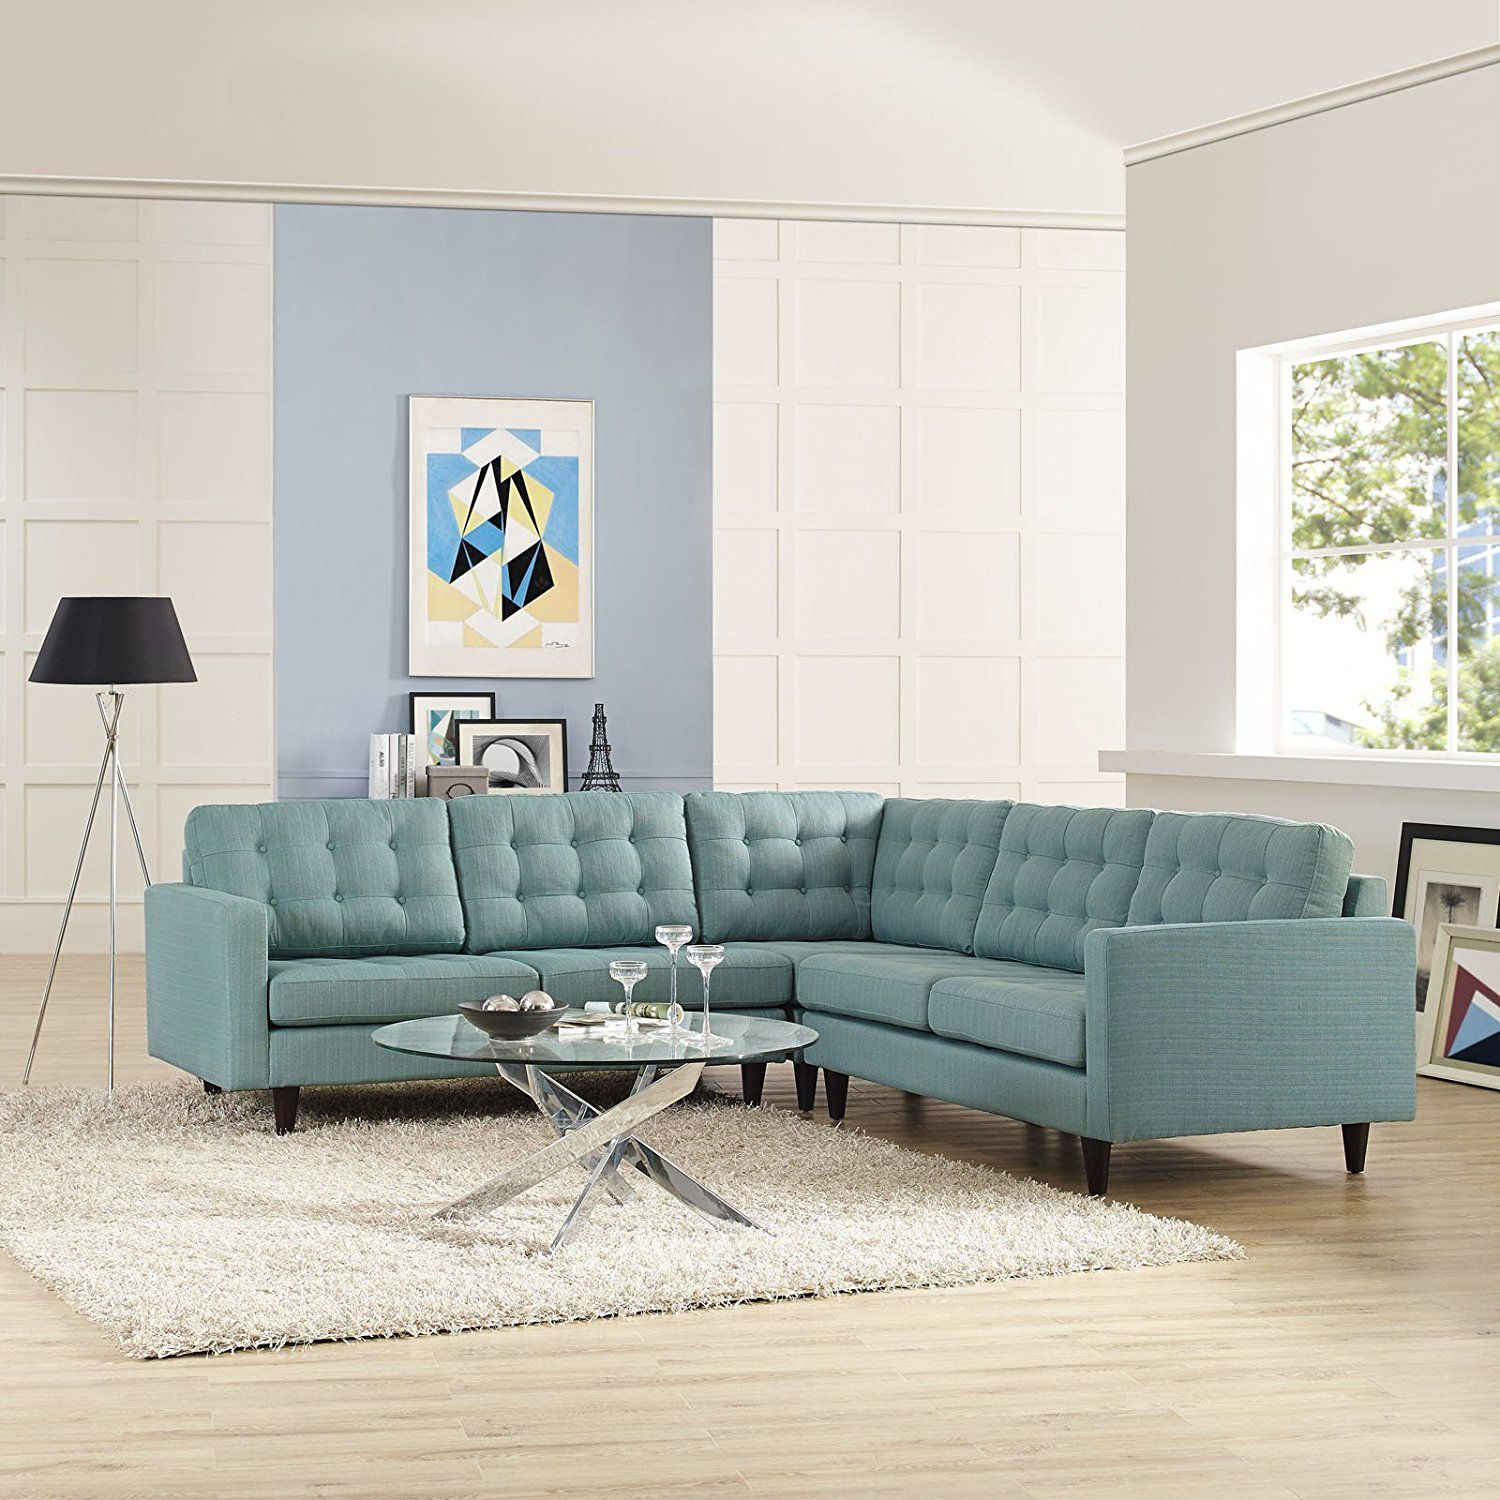 Priscilla EEI1417LB Light Blue Sectional Sofa Blue fabric Sofa